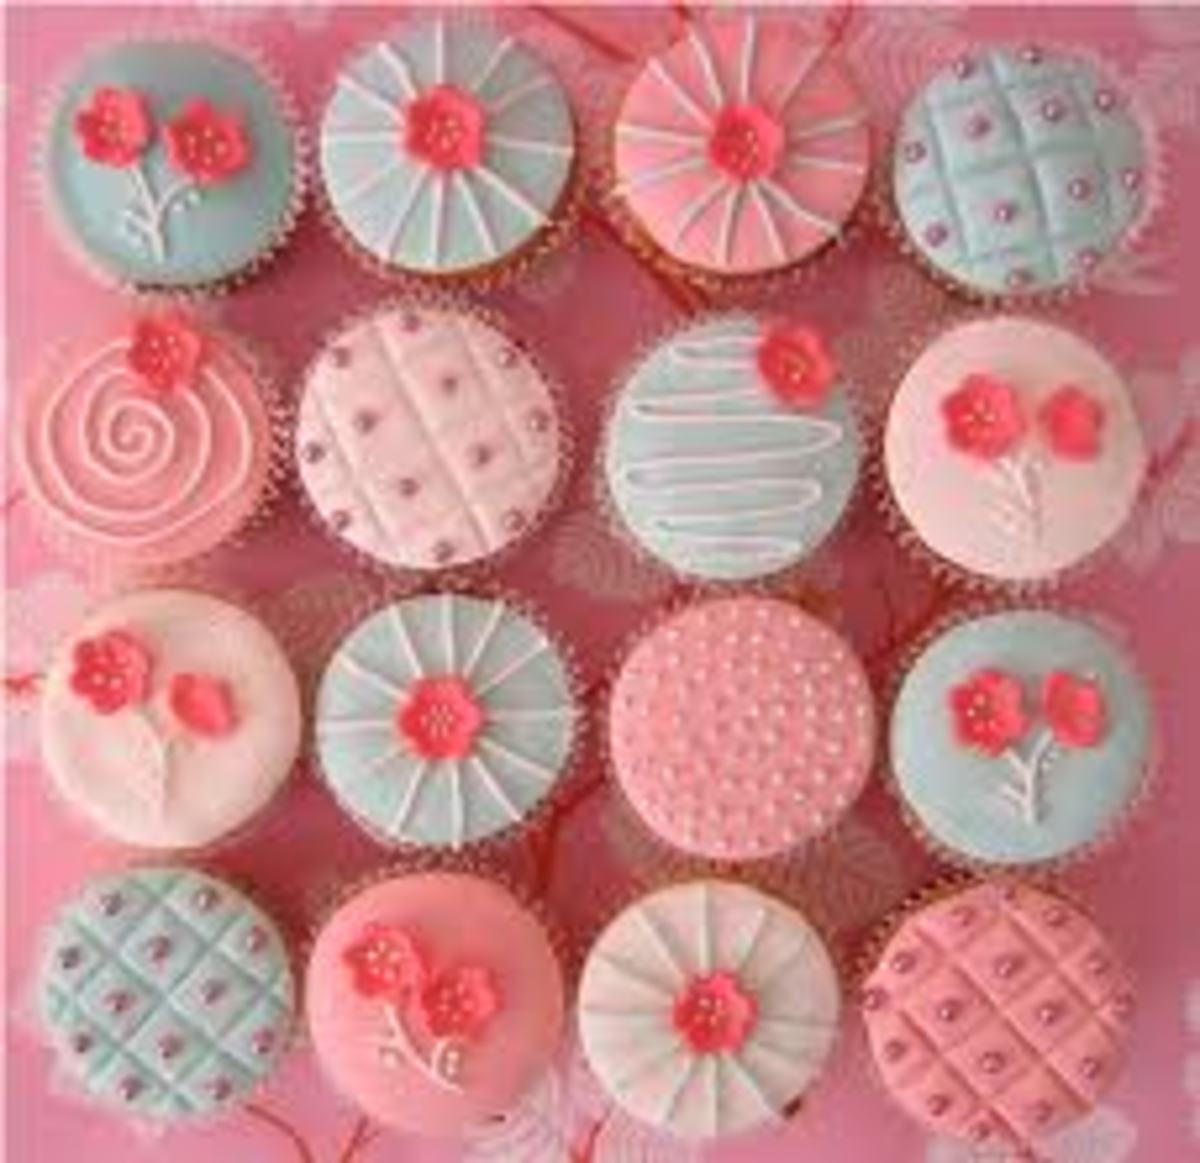 PRETTY GIRLY CUPCAKES